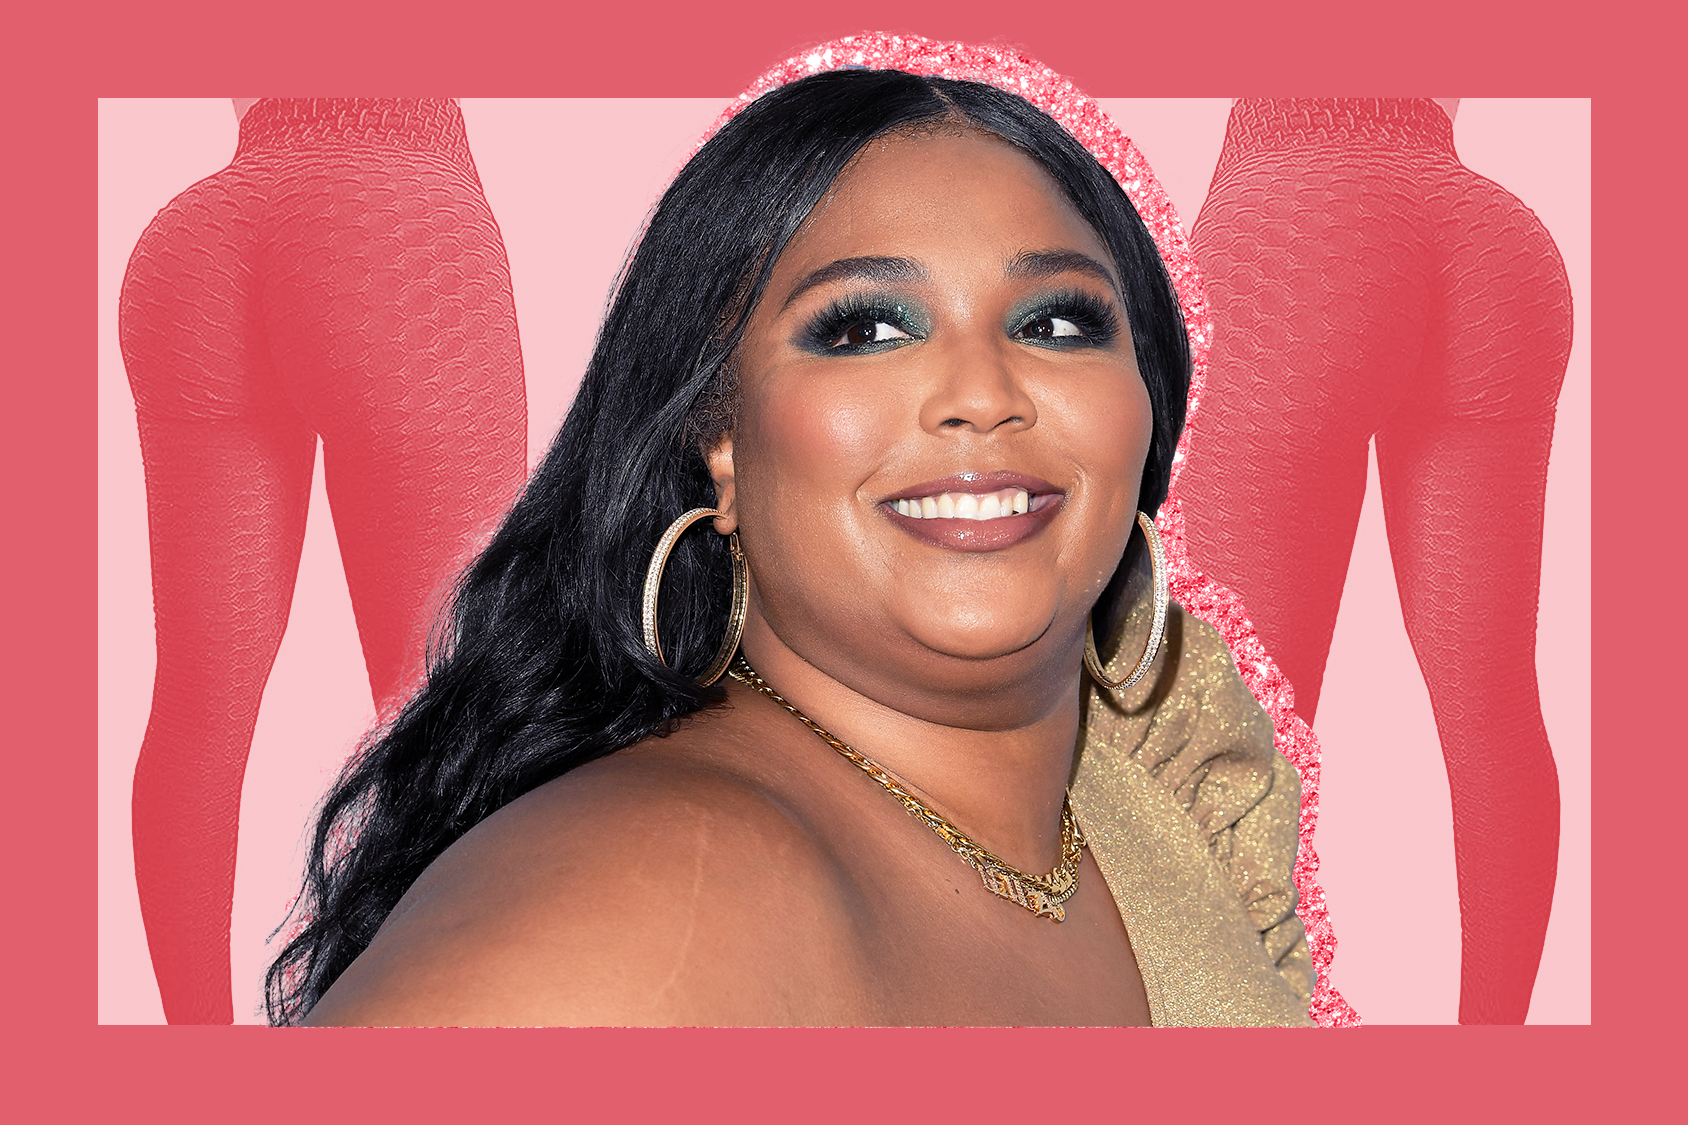 lizzo tiktok butt sculpting leggings , INGLEWOOD, CALIFORNIA - DECEMBER 06: Lizzo arrives at the KIIS FM's Jingle Ball 2019 Presented By Capital One At The Forum at The Forum on December 06, 2019 in Inglewood, California. (Photo by Steve Granitz/WireImage)